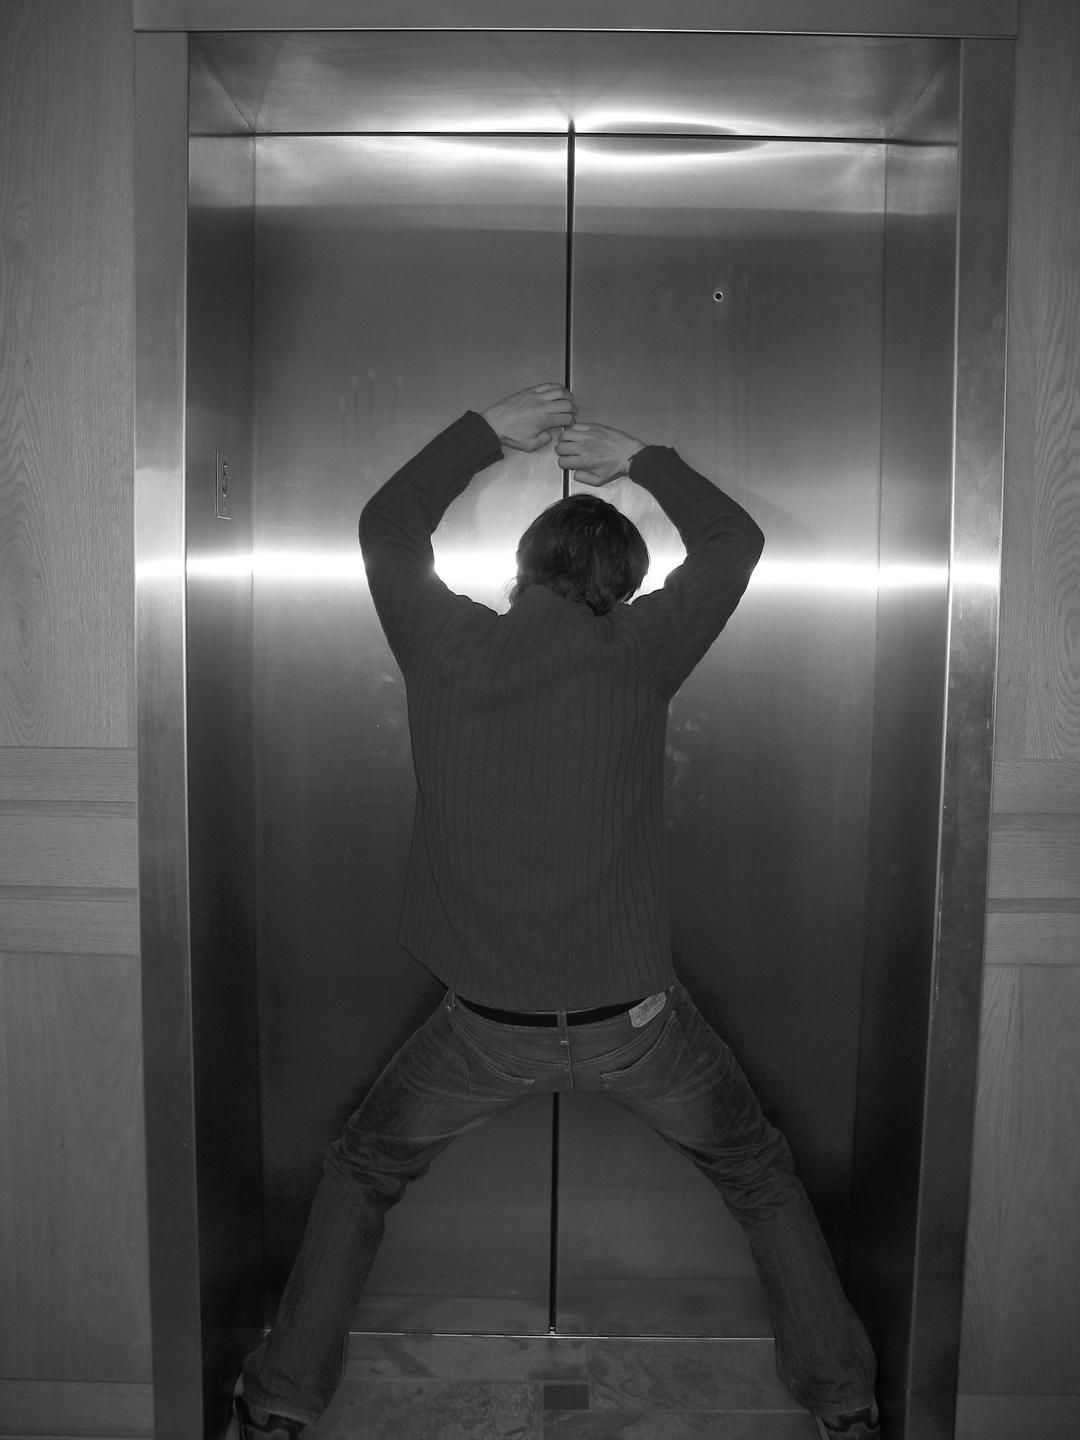 Trapped in a lift.